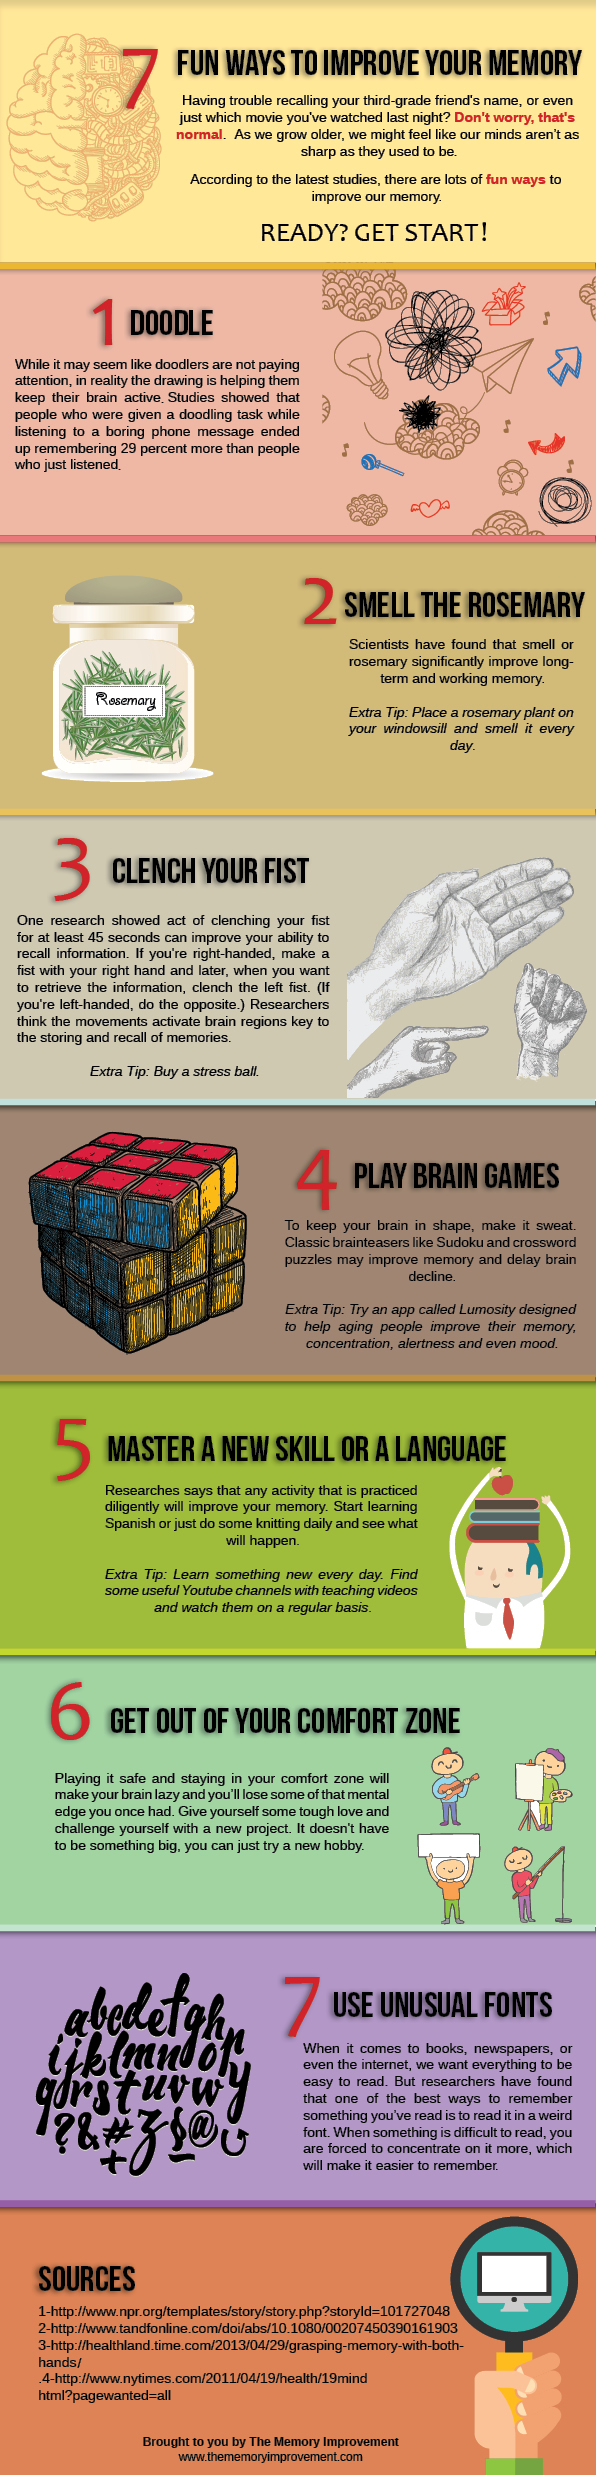 Improve Your Memory Infographic